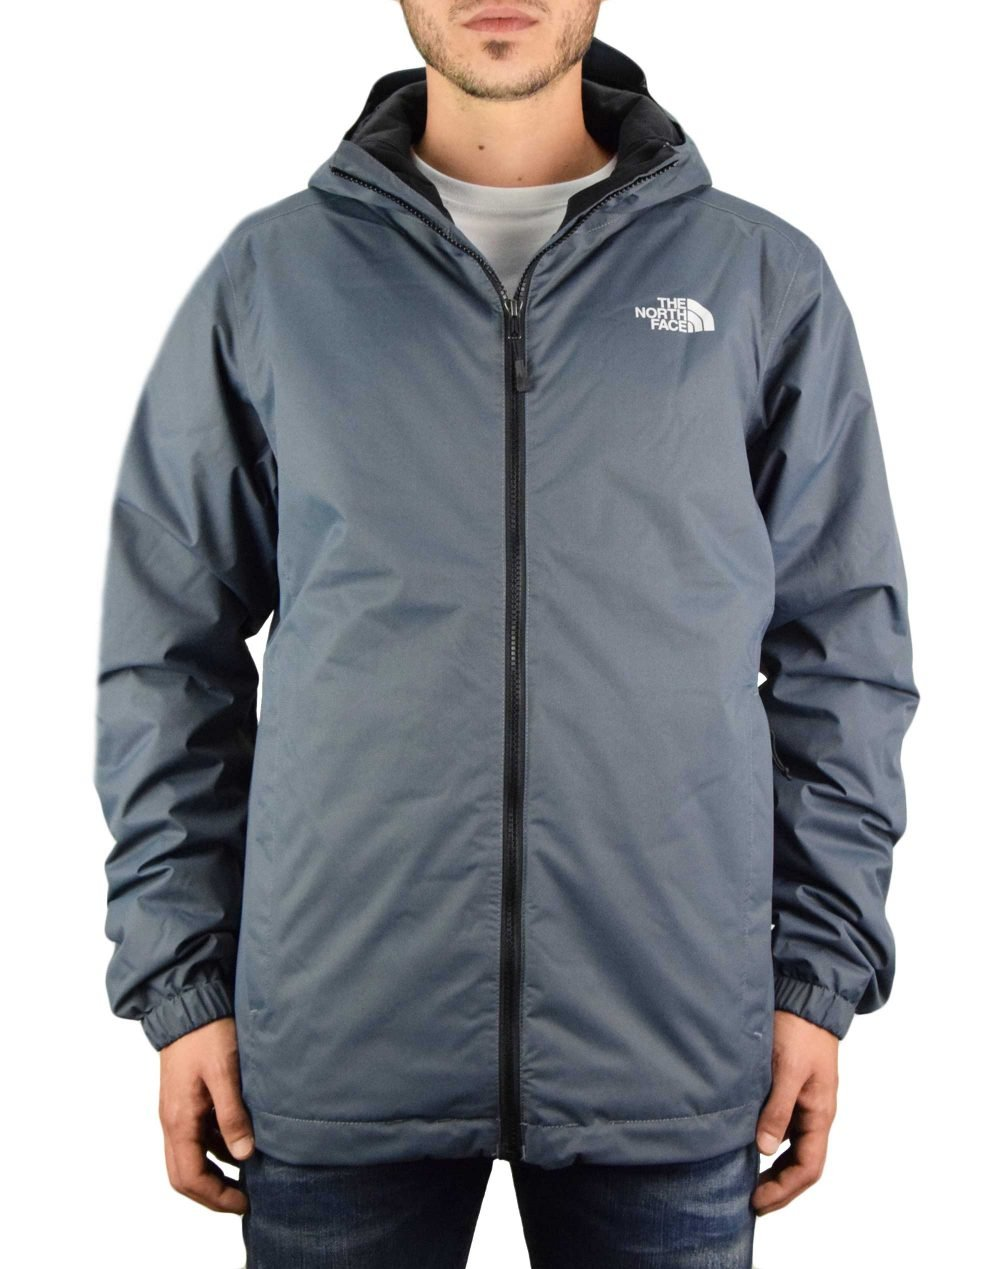 The North Face Quest Insulated Jacket (NF00C3021KK1) Vanadis Grey/Black Heather